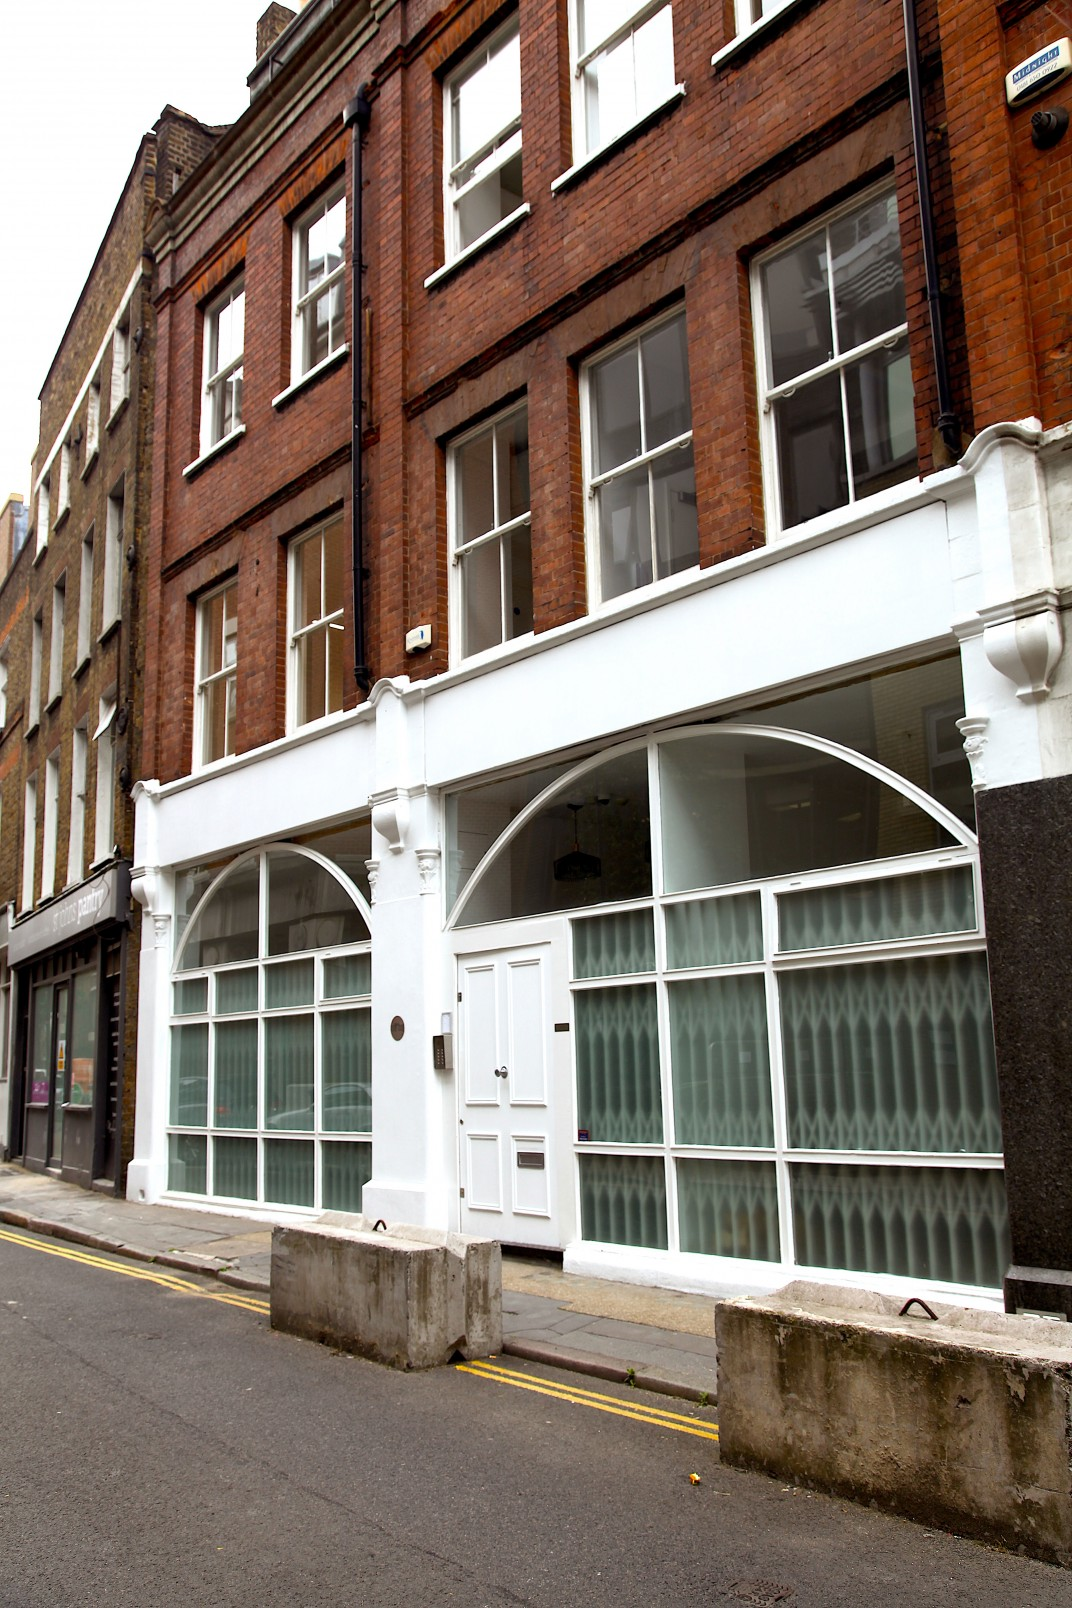 Images for St John's Lane, Farringdon, EC1M 4BJ EAID:3928049530 BID:2